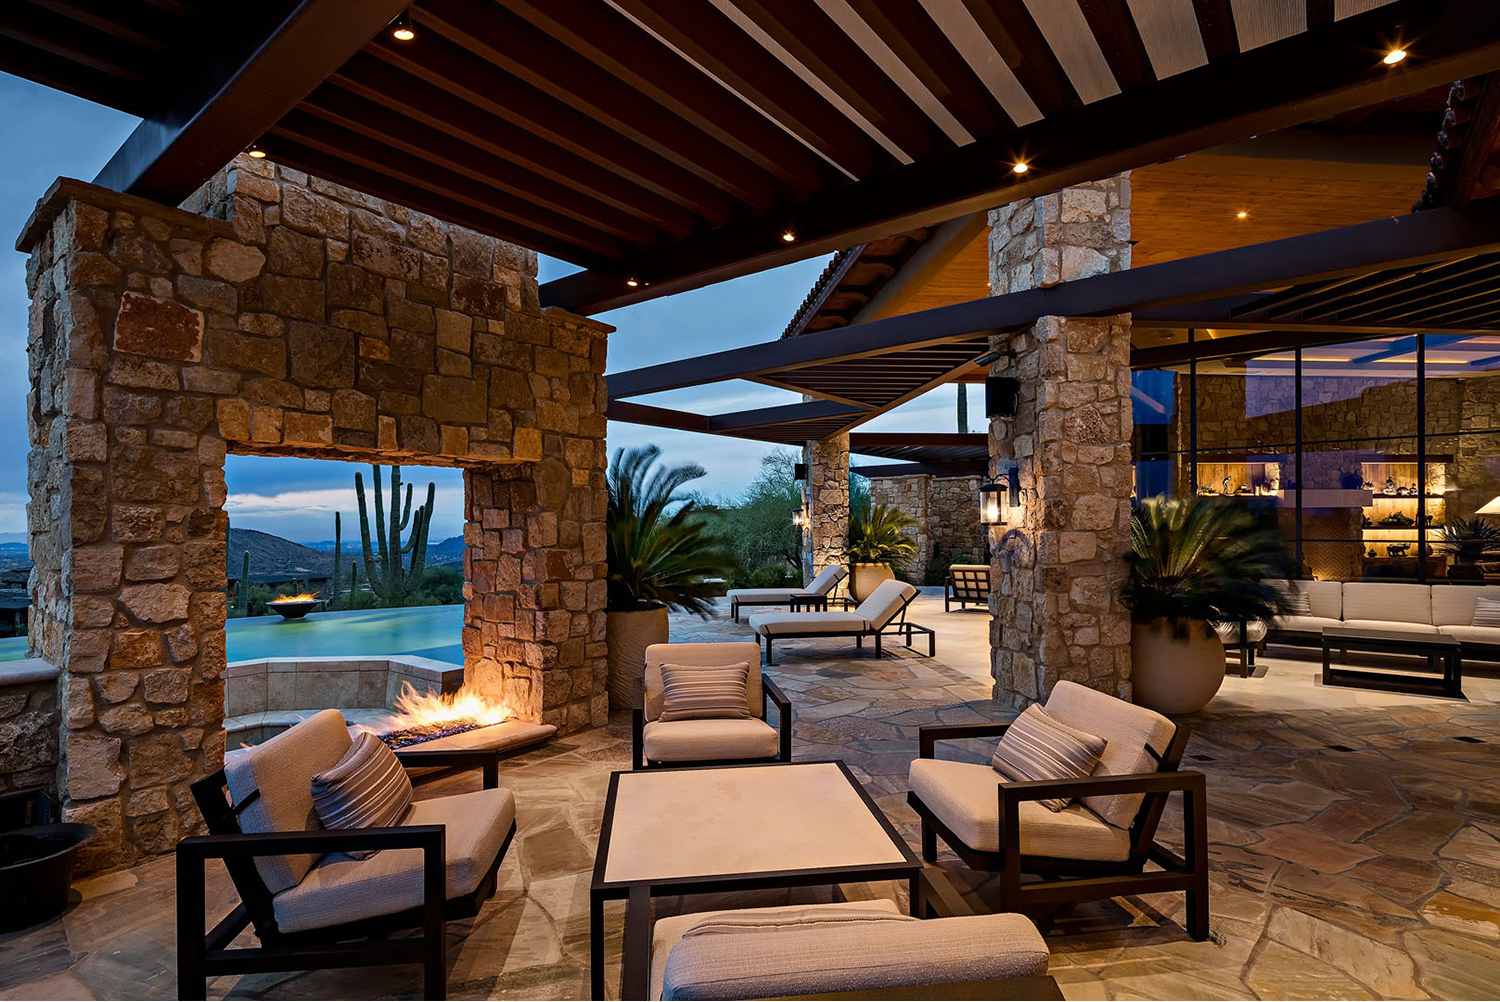 Southwest Patio with Desert Views